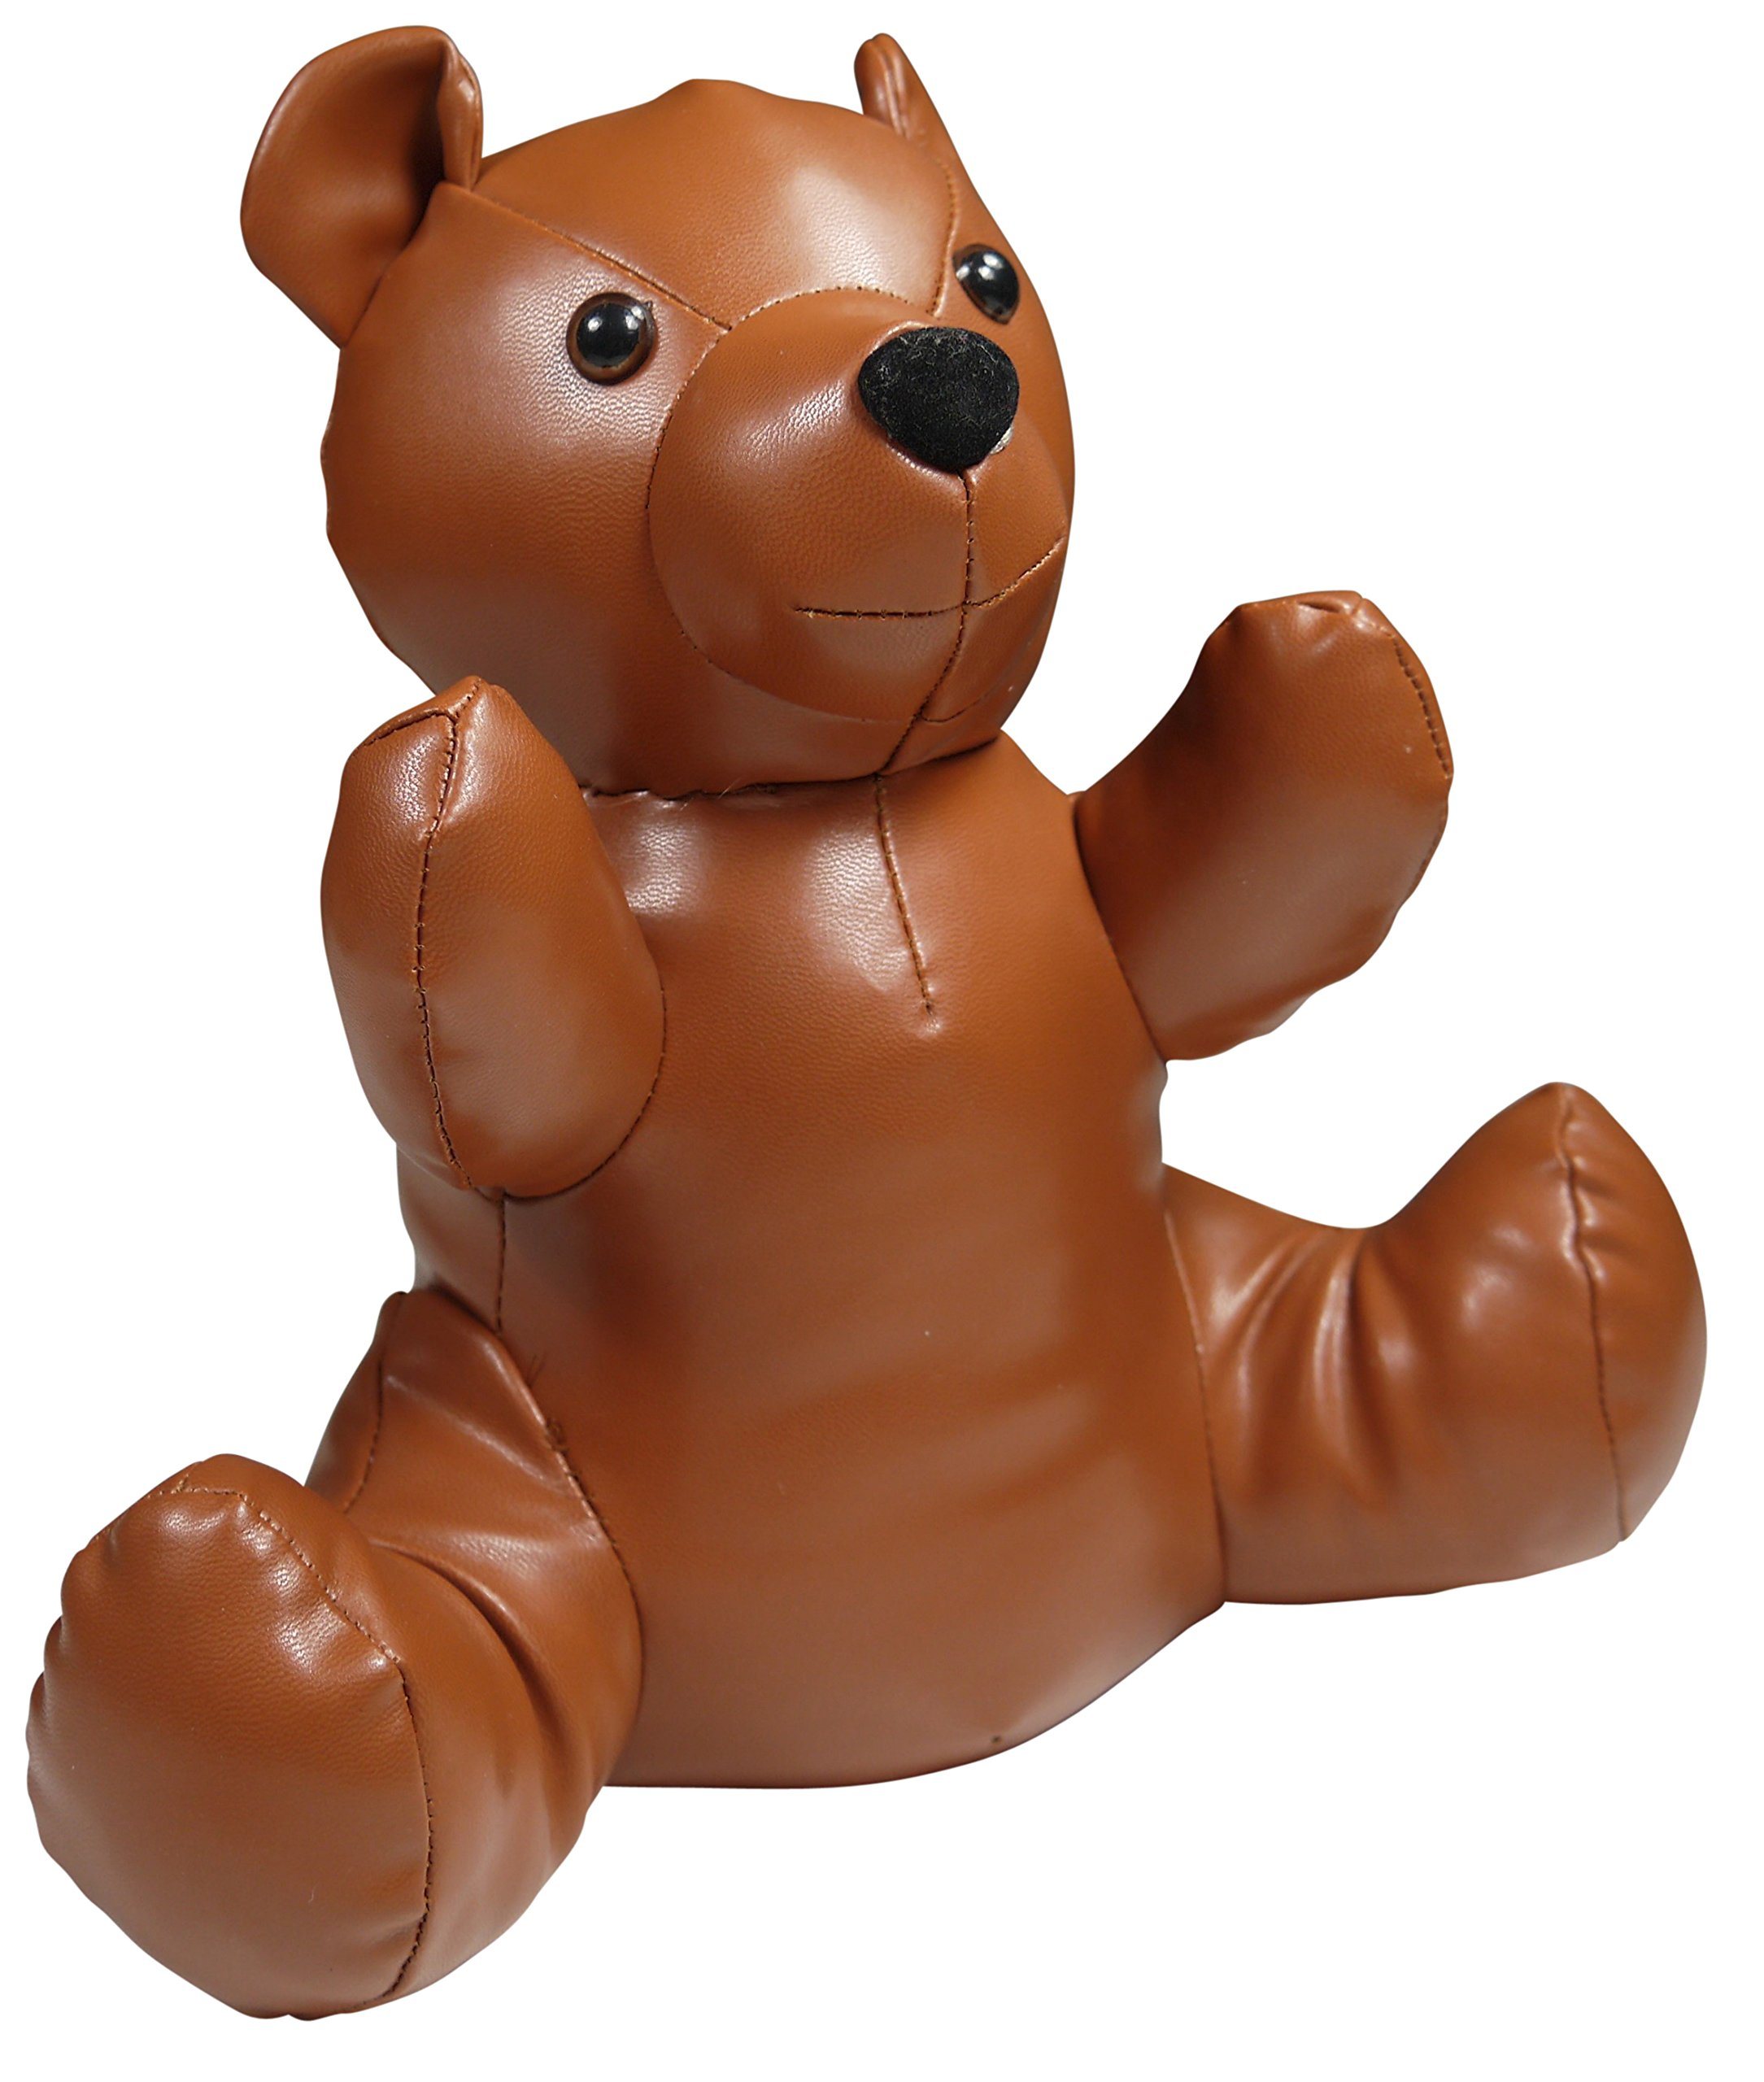 khevga Animal Door Stopper, Brown Teddy Bear, Leather Look